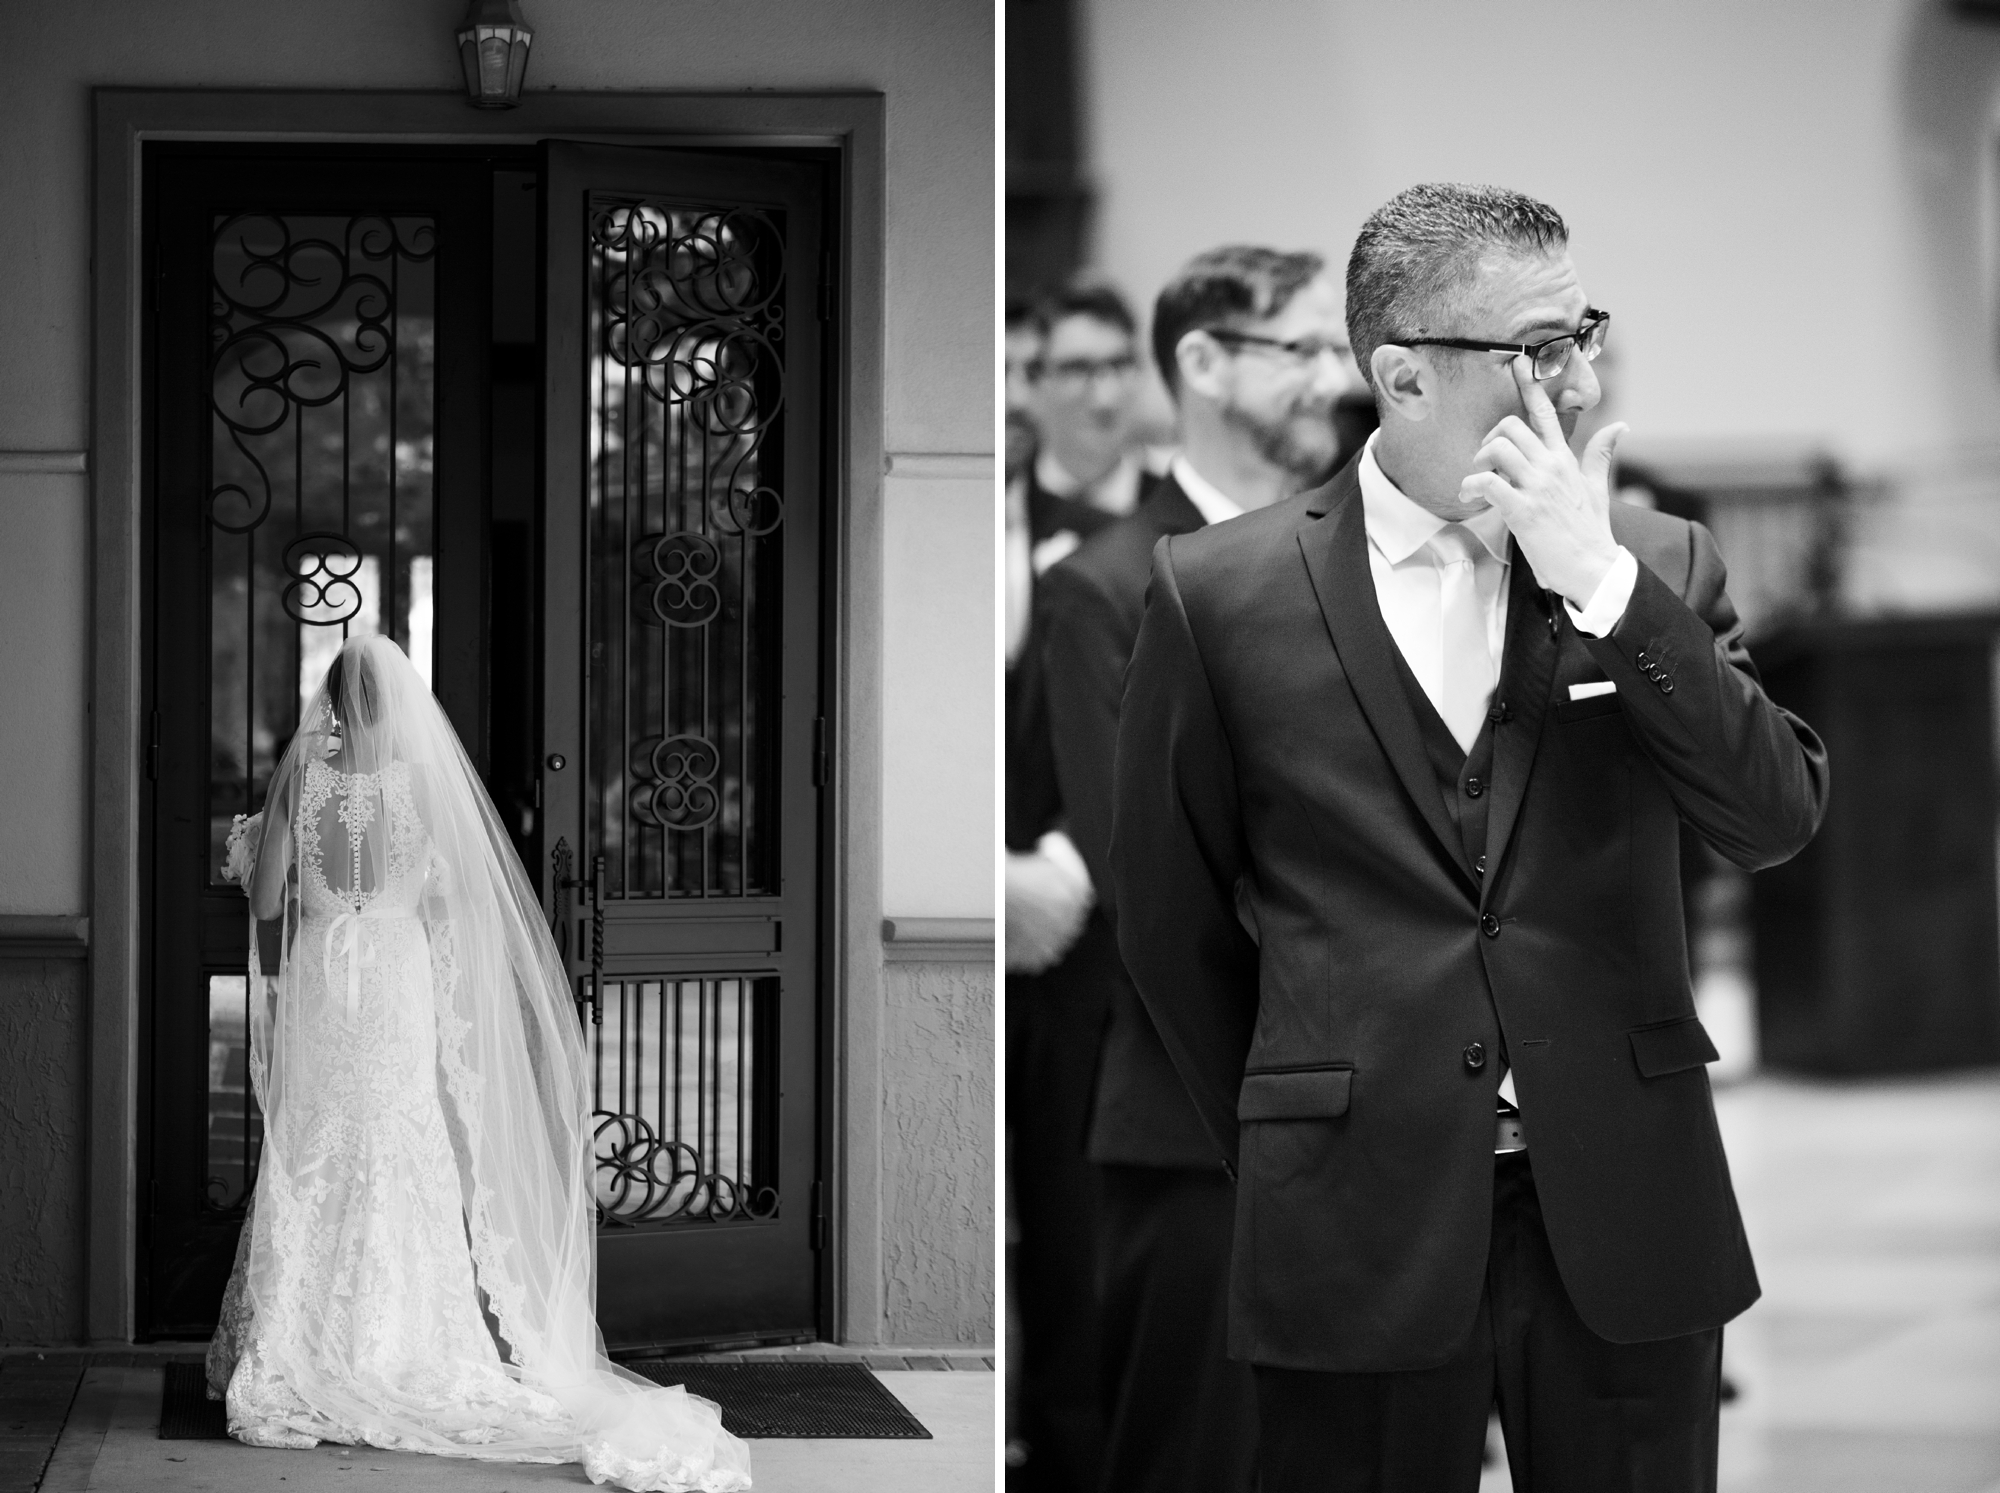 groom cries when bride walks down aisle